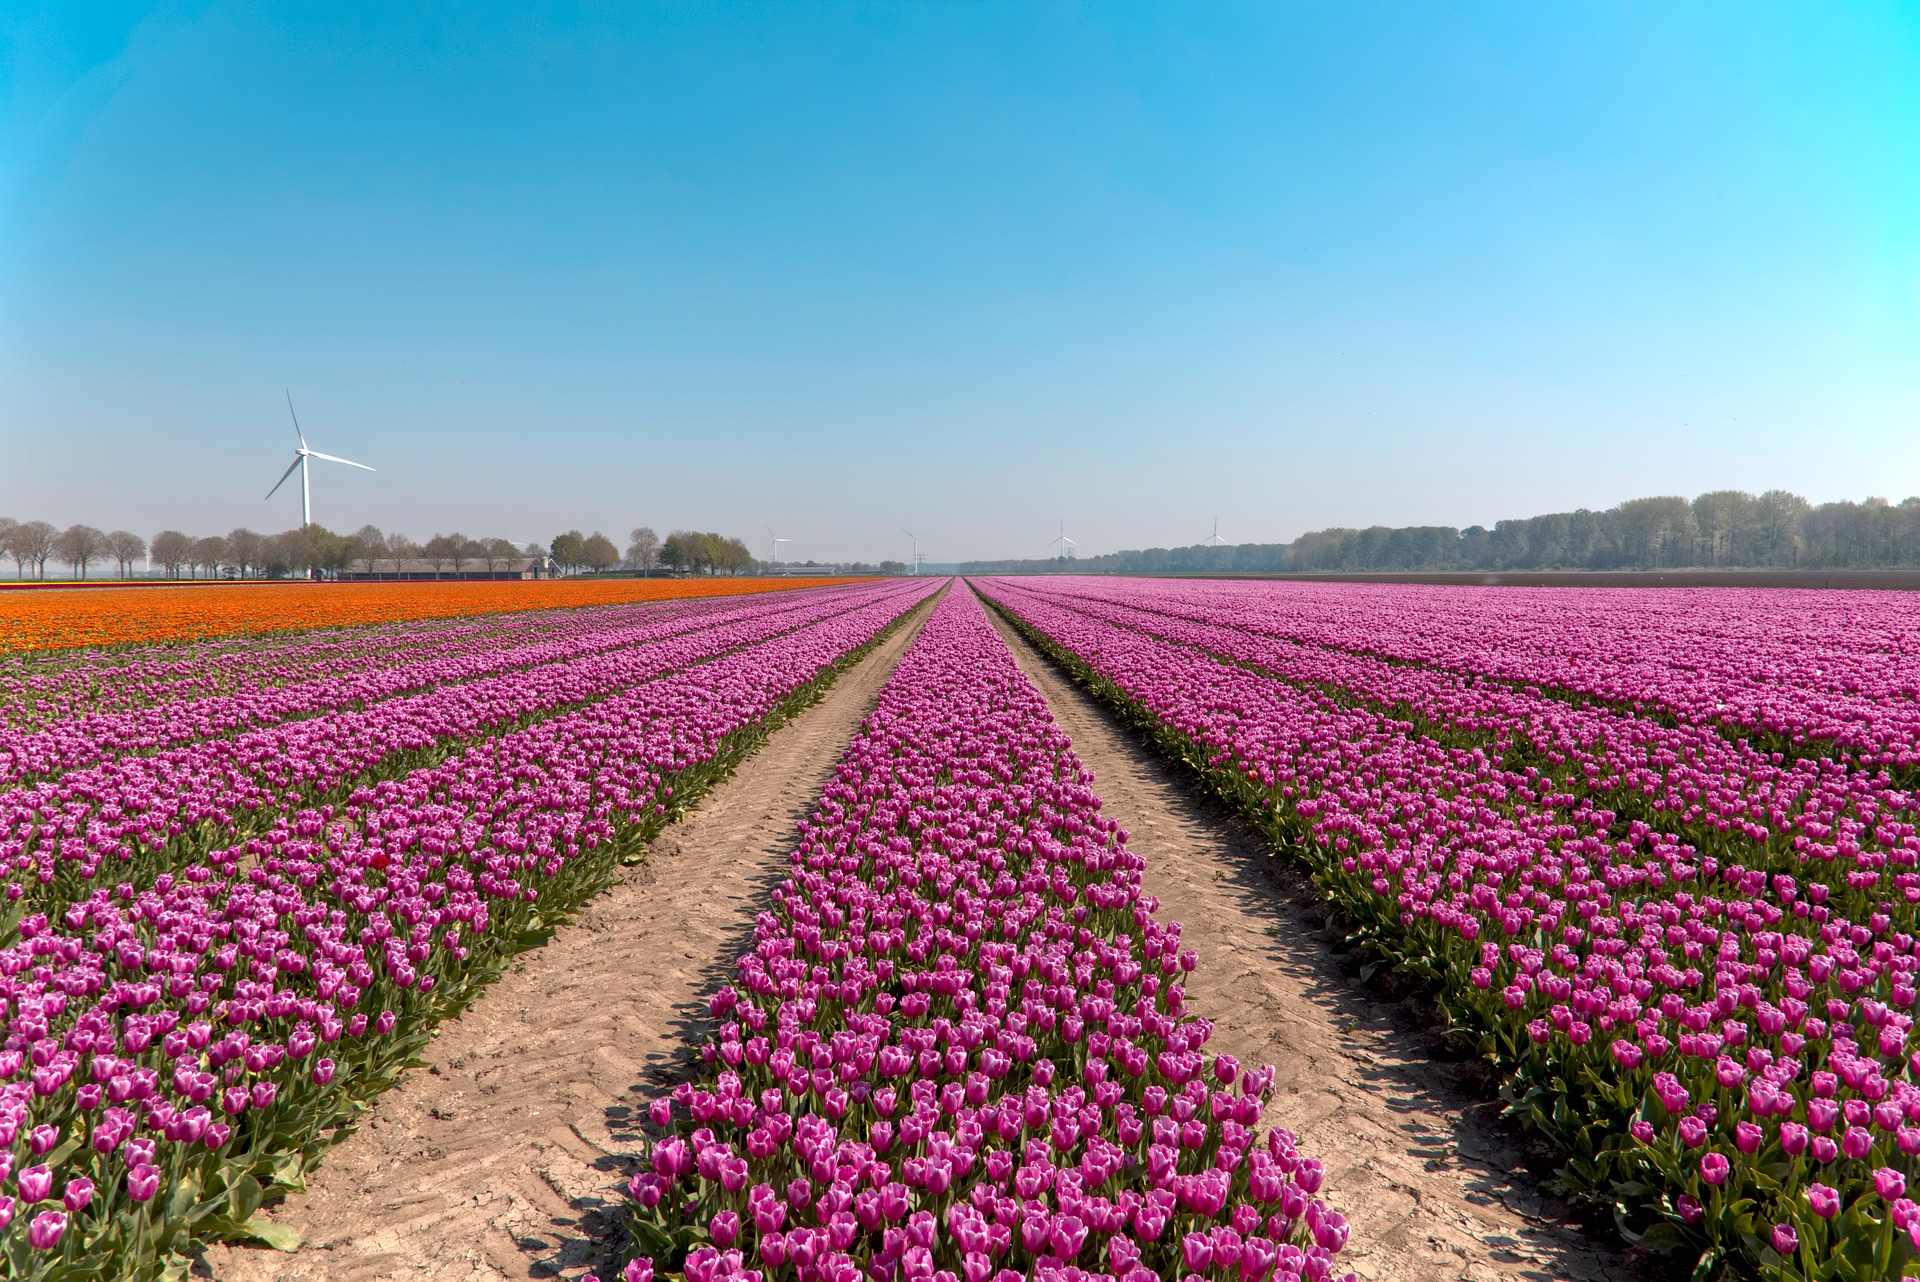 Le Flevoland : Royaume des tulipes hollandaises